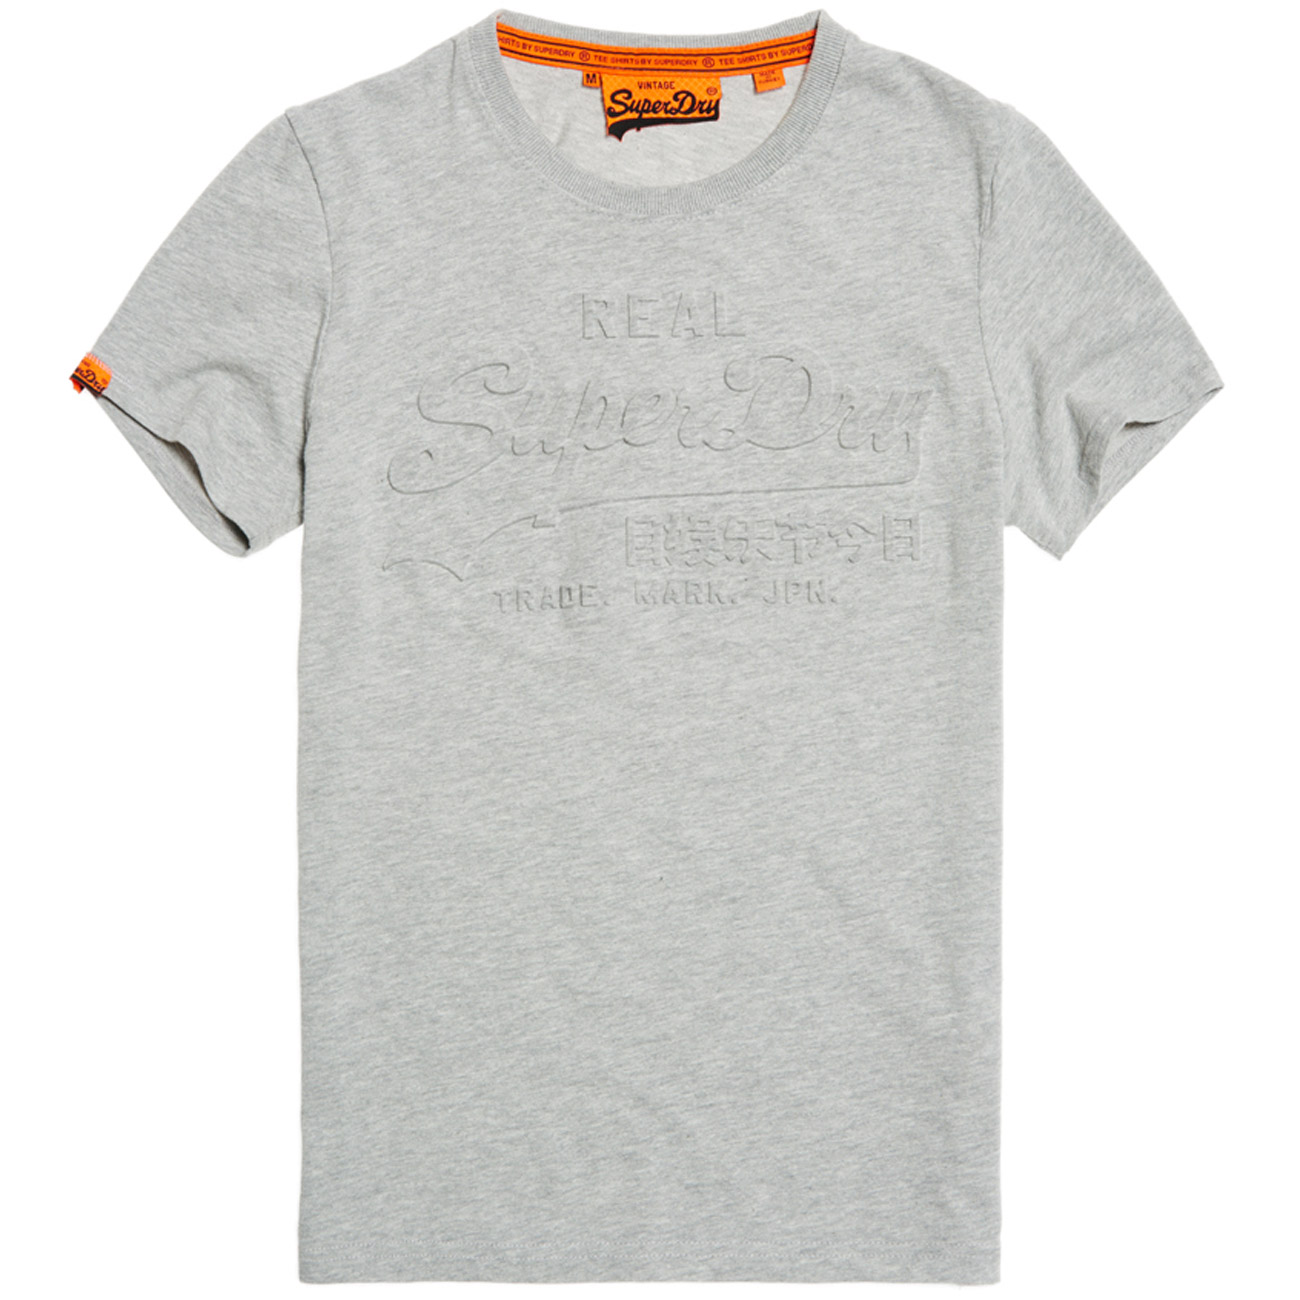 superdry herren t shirt vintage logo embossed tee grey marl. Black Bedroom Furniture Sets. Home Design Ideas